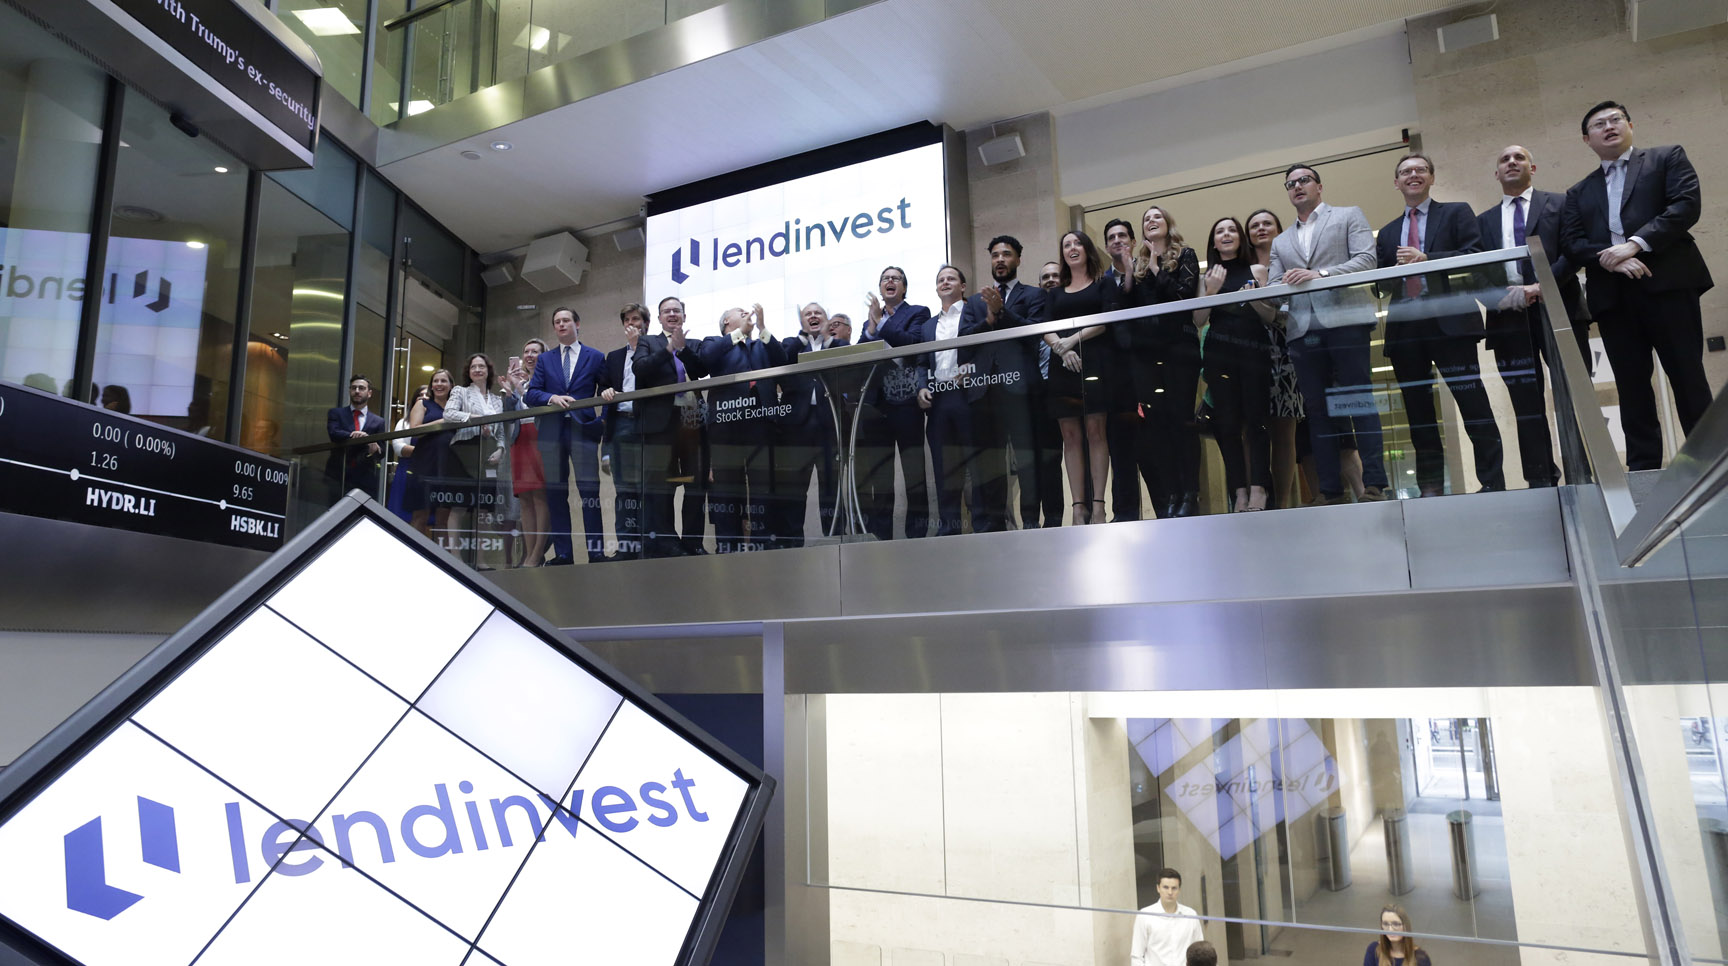 LendInvest bond lists on London Stock Exchange after oversubscribed raise